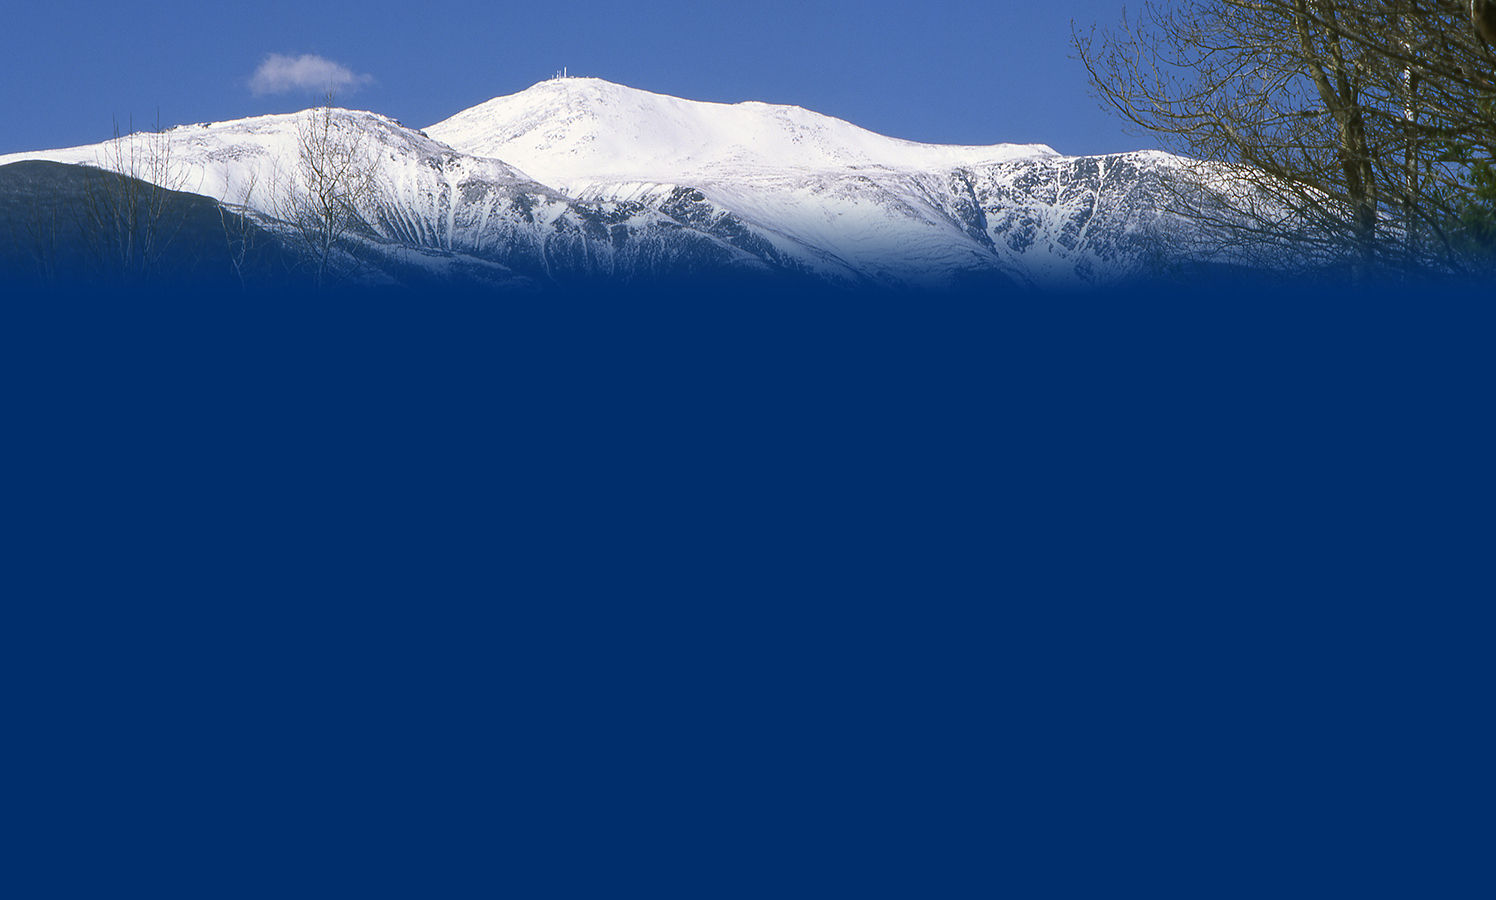 Secondary page header image of Mt. Washington